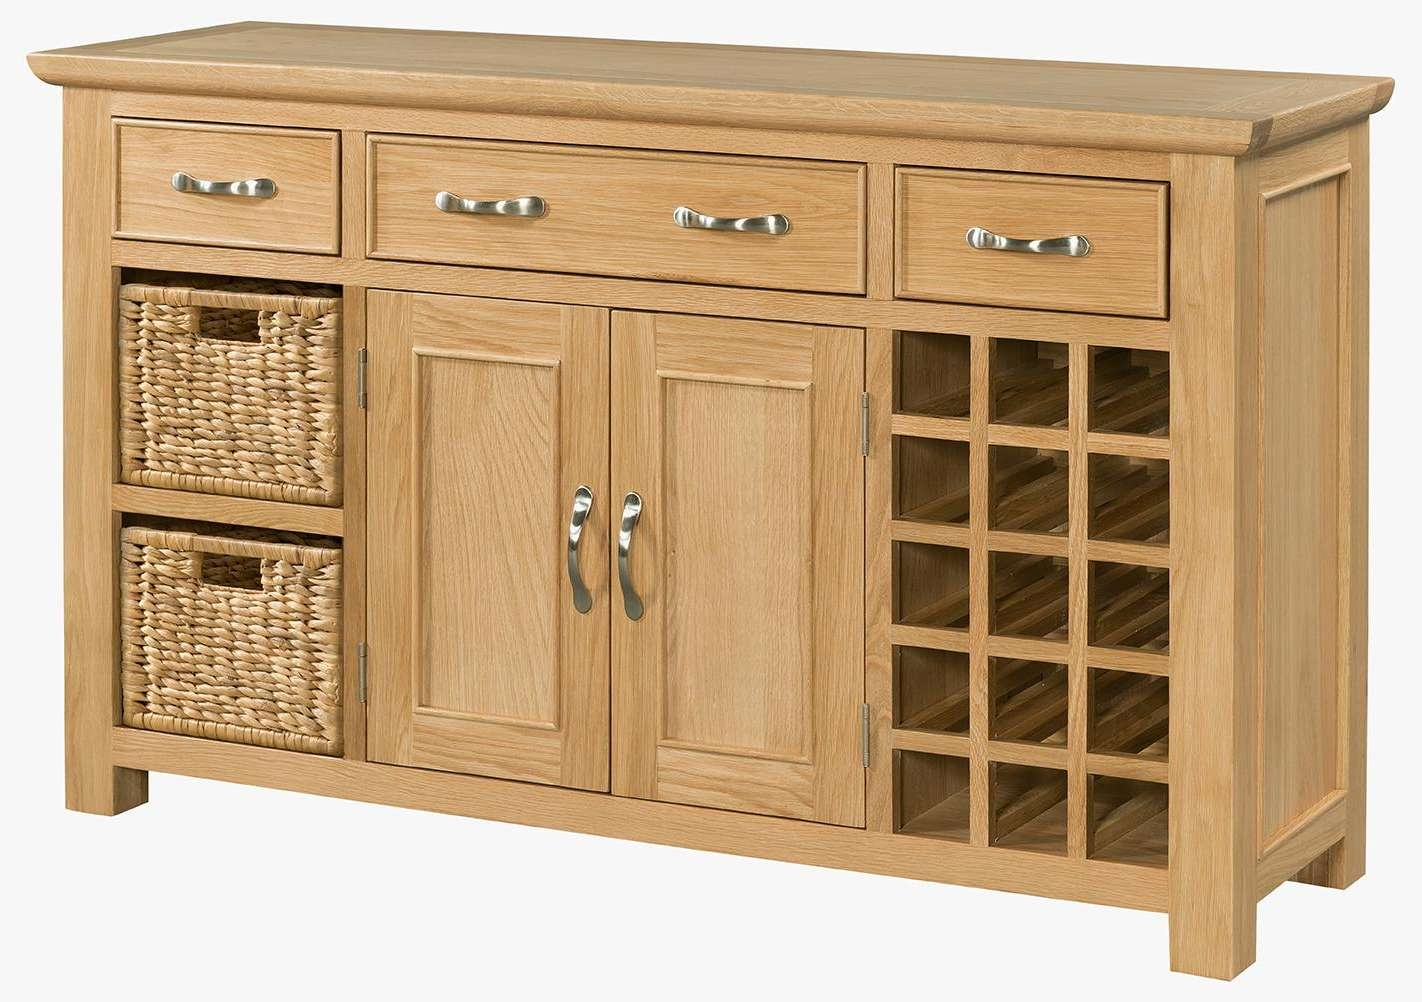 Oak Large Sideboard With Wine Rack (sie054) – Solid Wood & Painted Intended For Wine Sideboards (View 5 of 20)